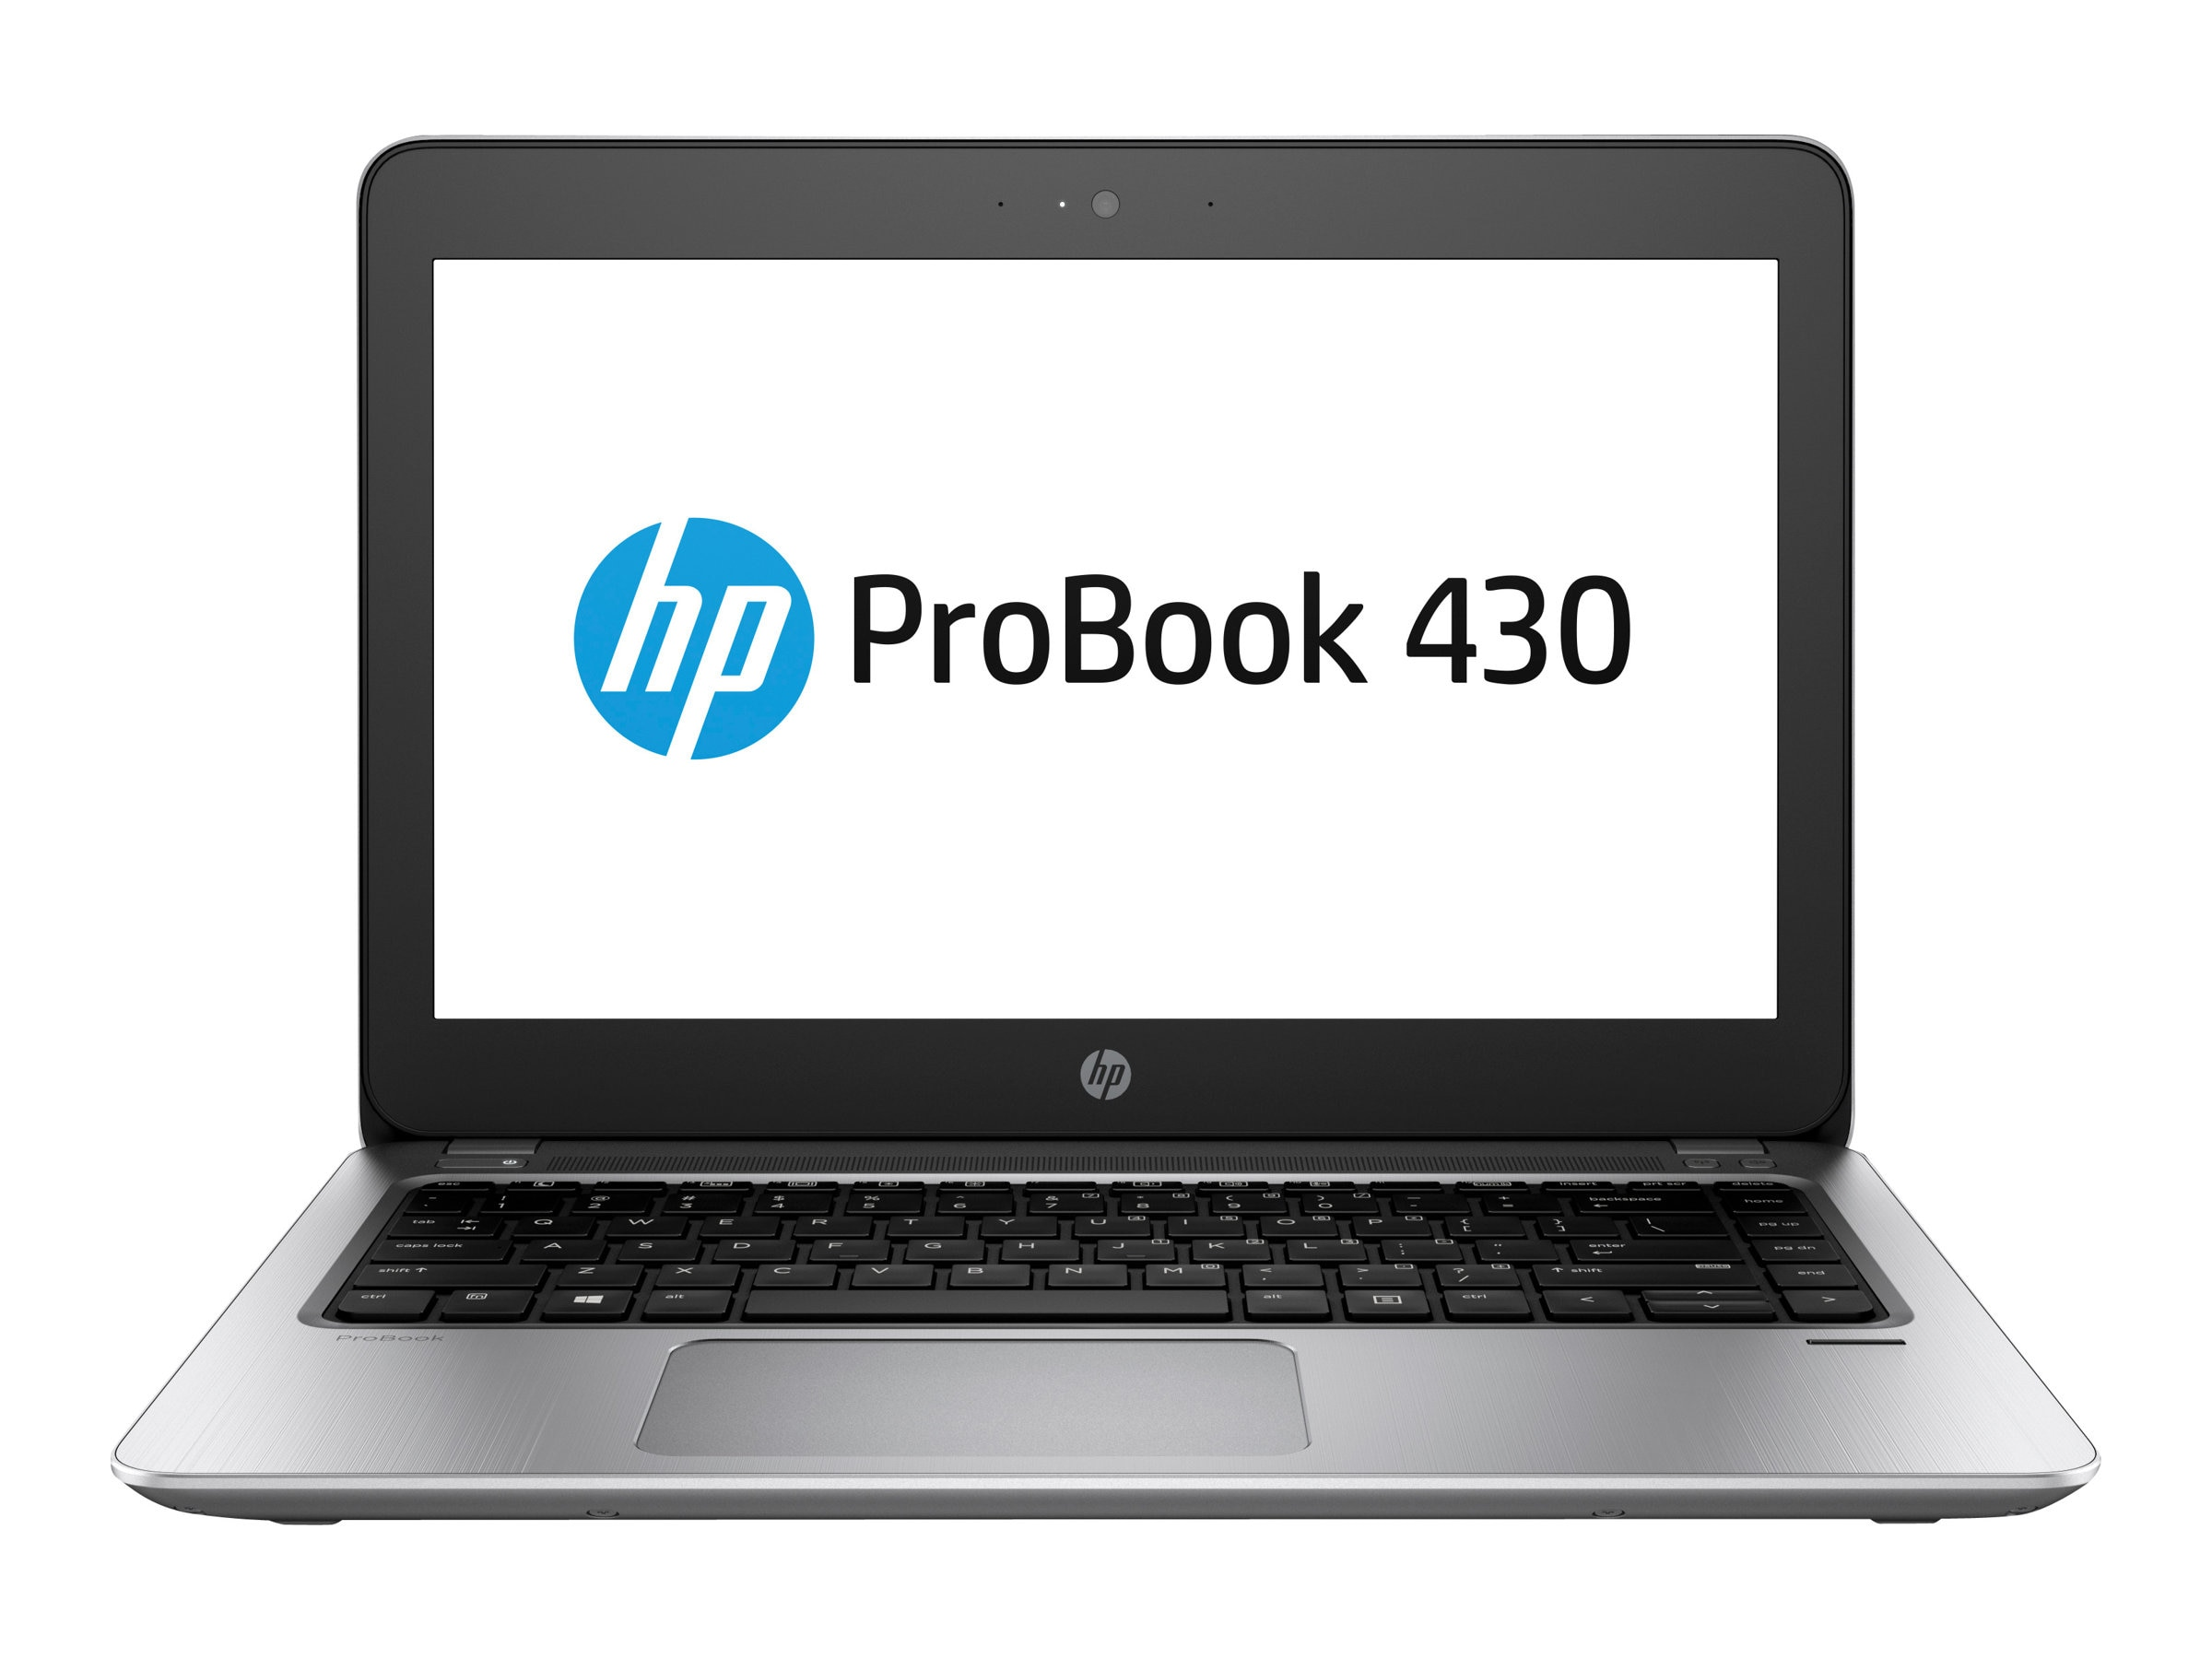 HP ProBook 430 G4 2.5GHz Core i5 13.3in display, Y9G09UT#ABA